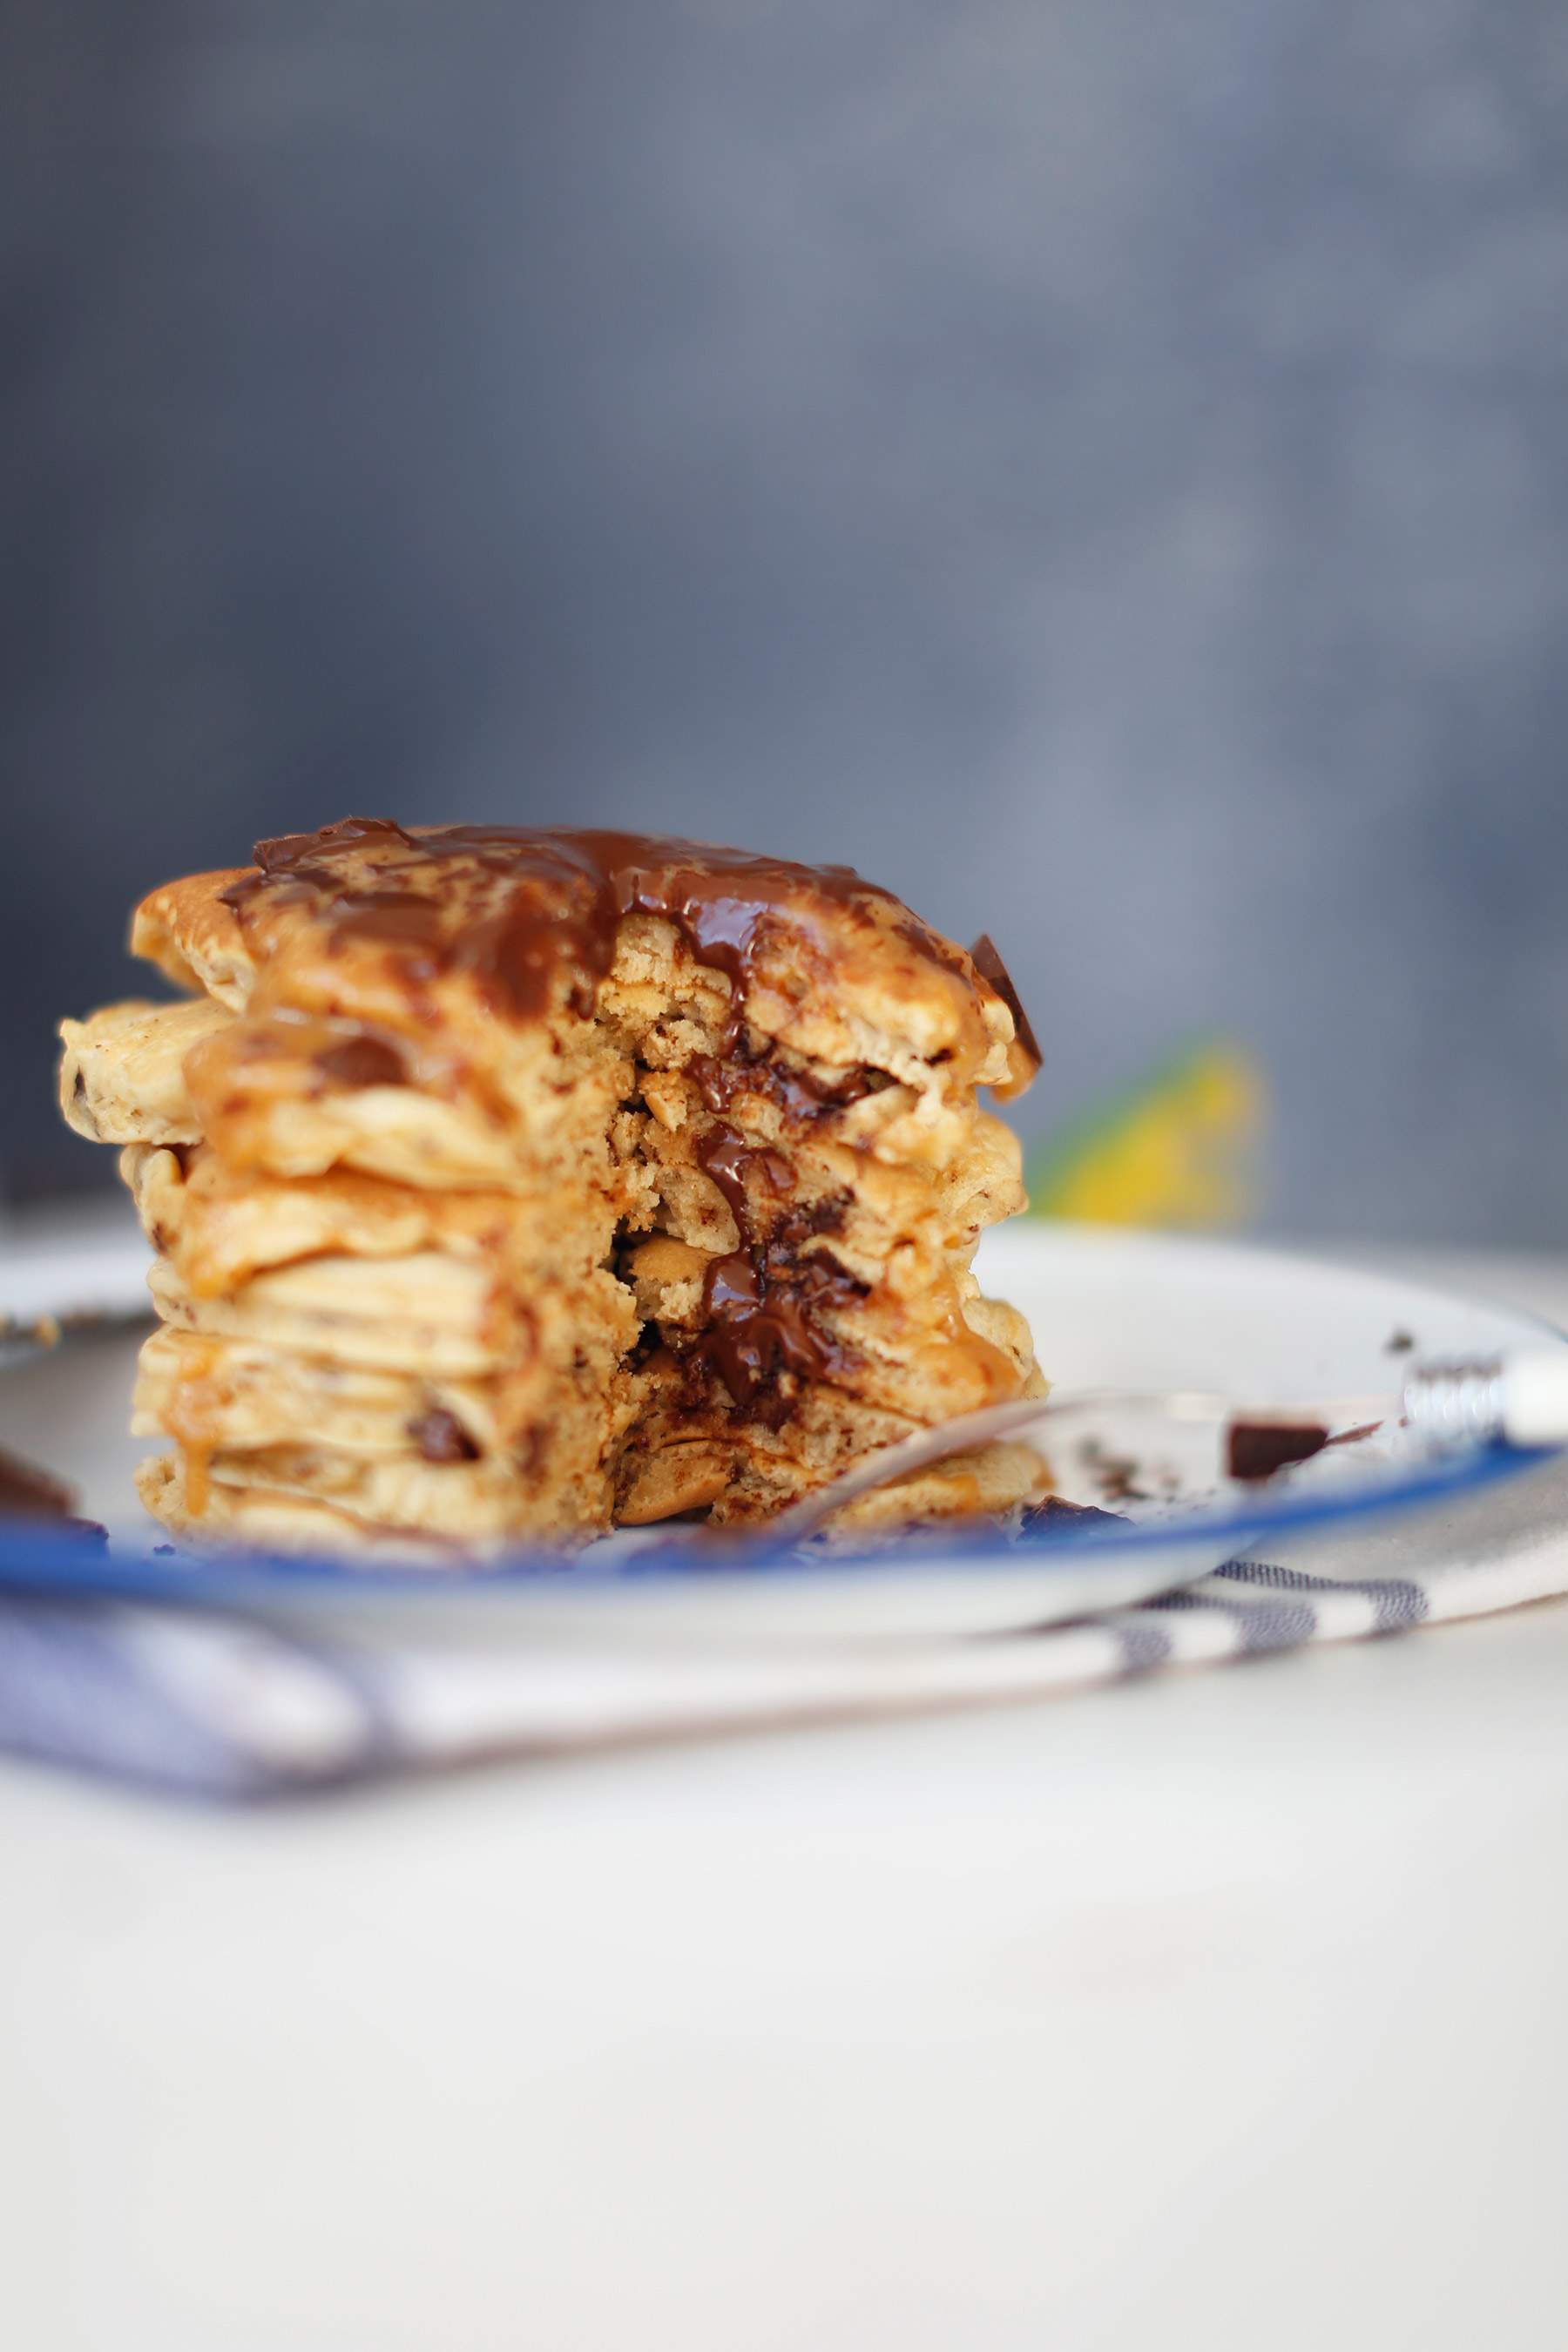 PEANUT-BUTTER-AND-CHOCOLATE-PANCAKE2